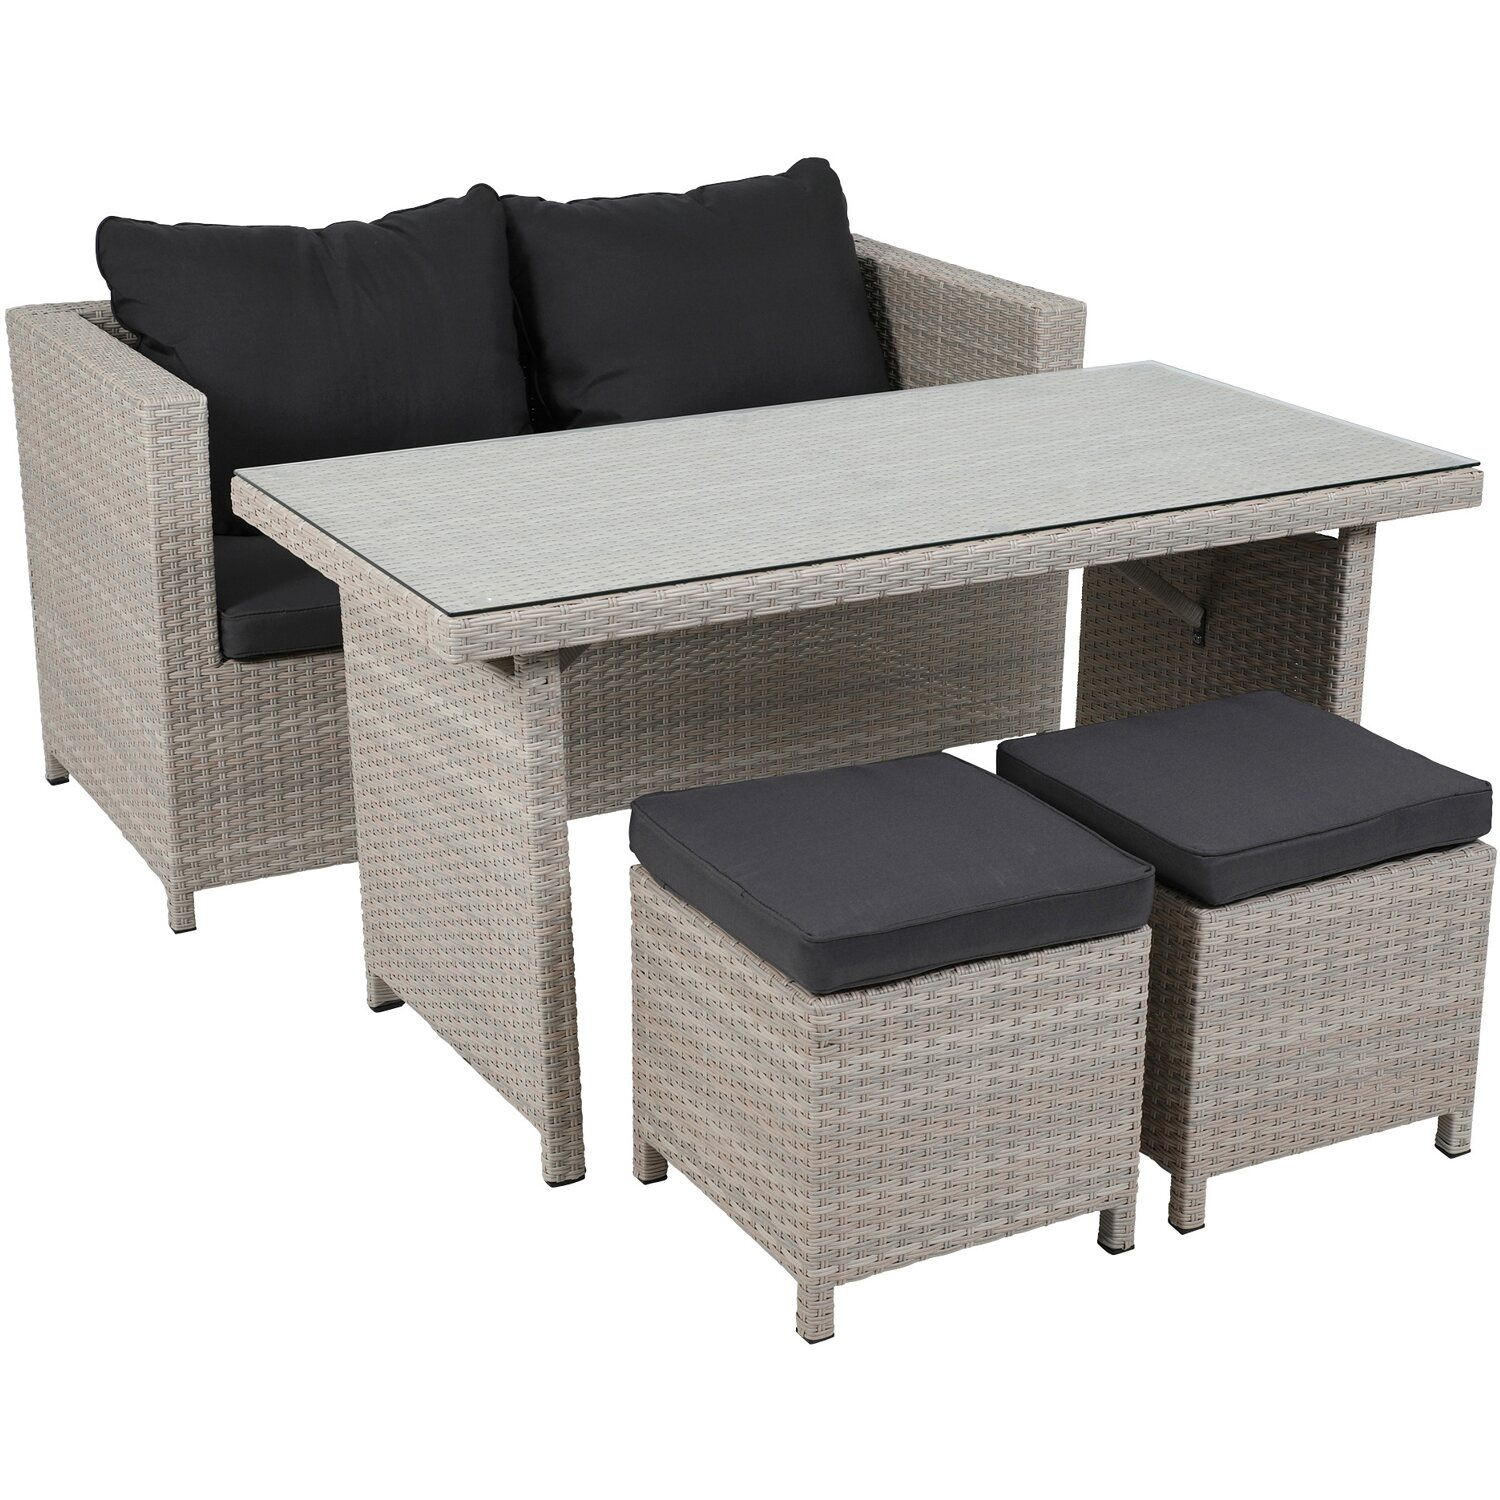 greemotion garten lounge set kiel polyrattan beige 4. Black Bedroom Furniture Sets. Home Design Ideas